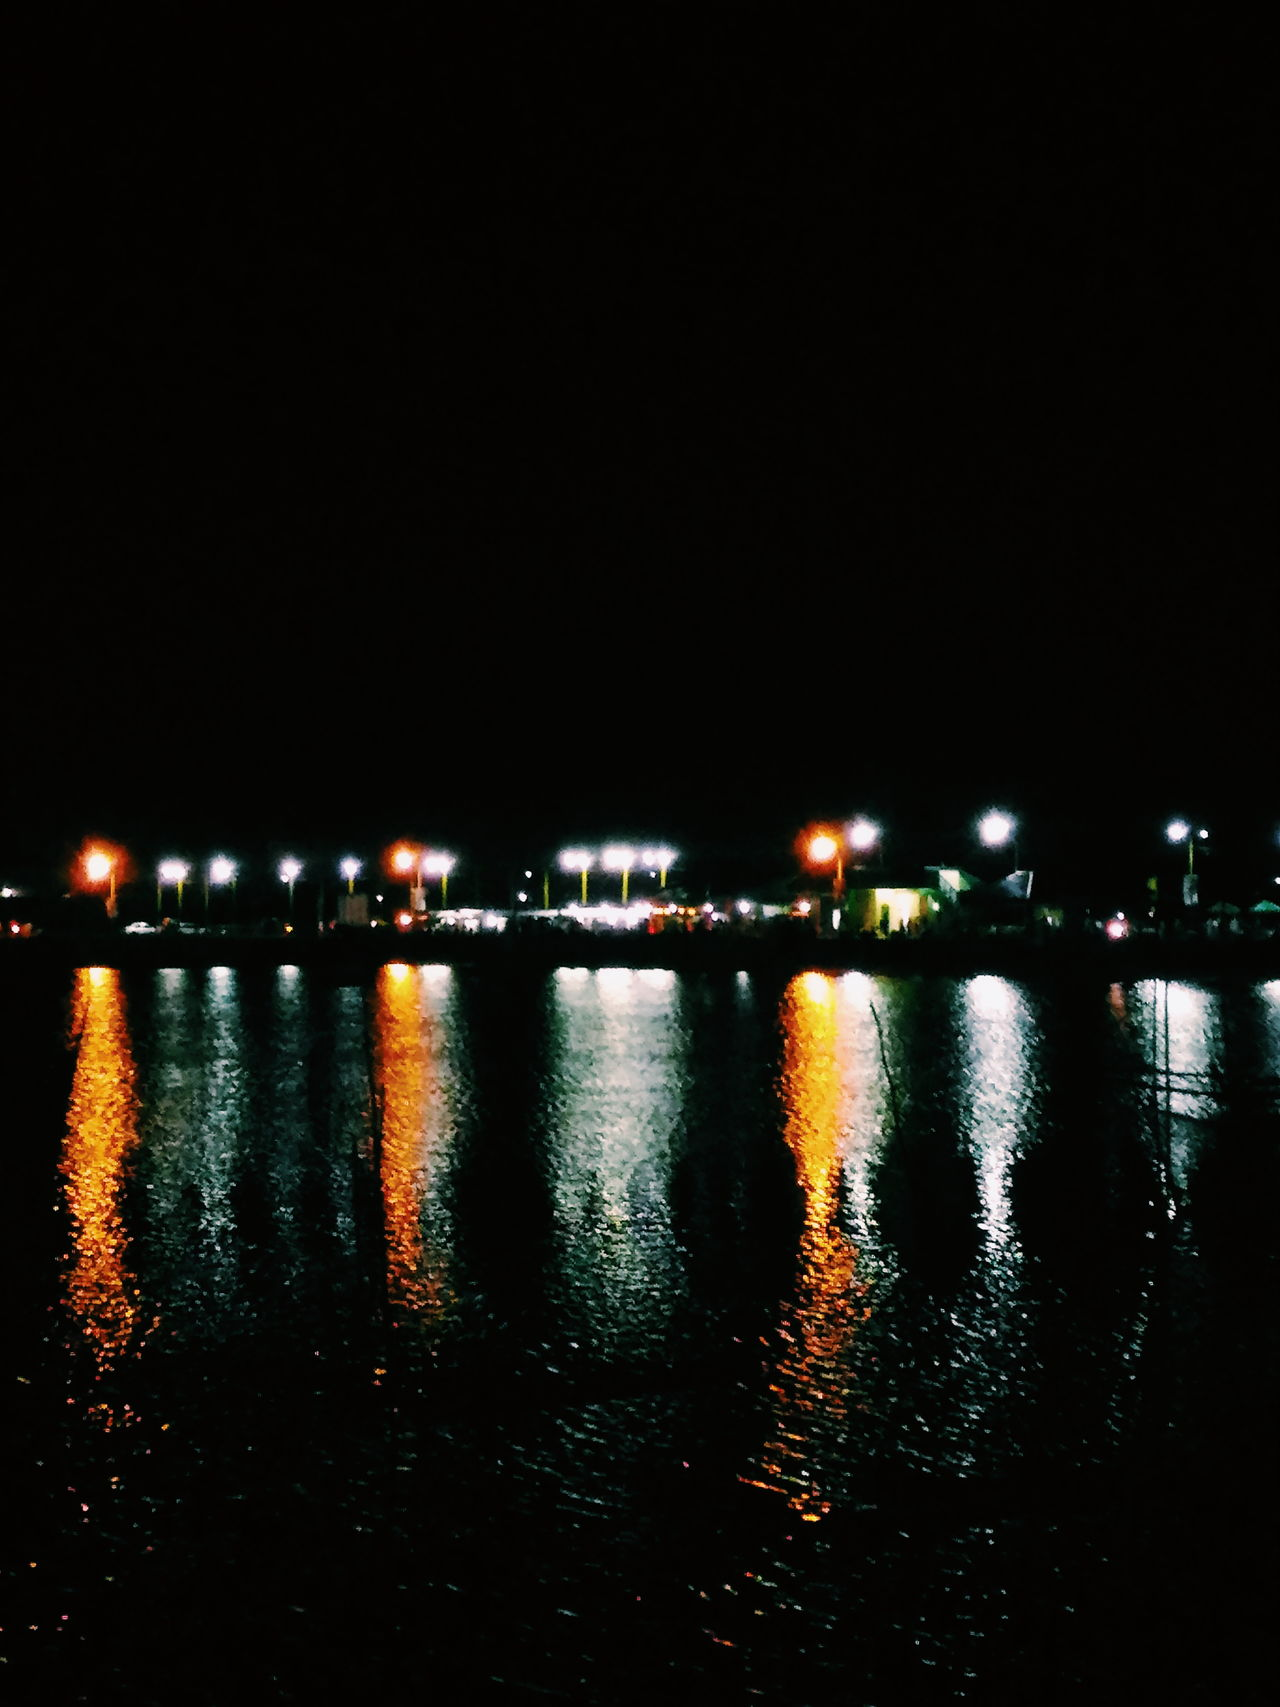 Sorsogon Baywalk Baywalk Nightwalk Sorsogoncity Reflection Reflections In The Water